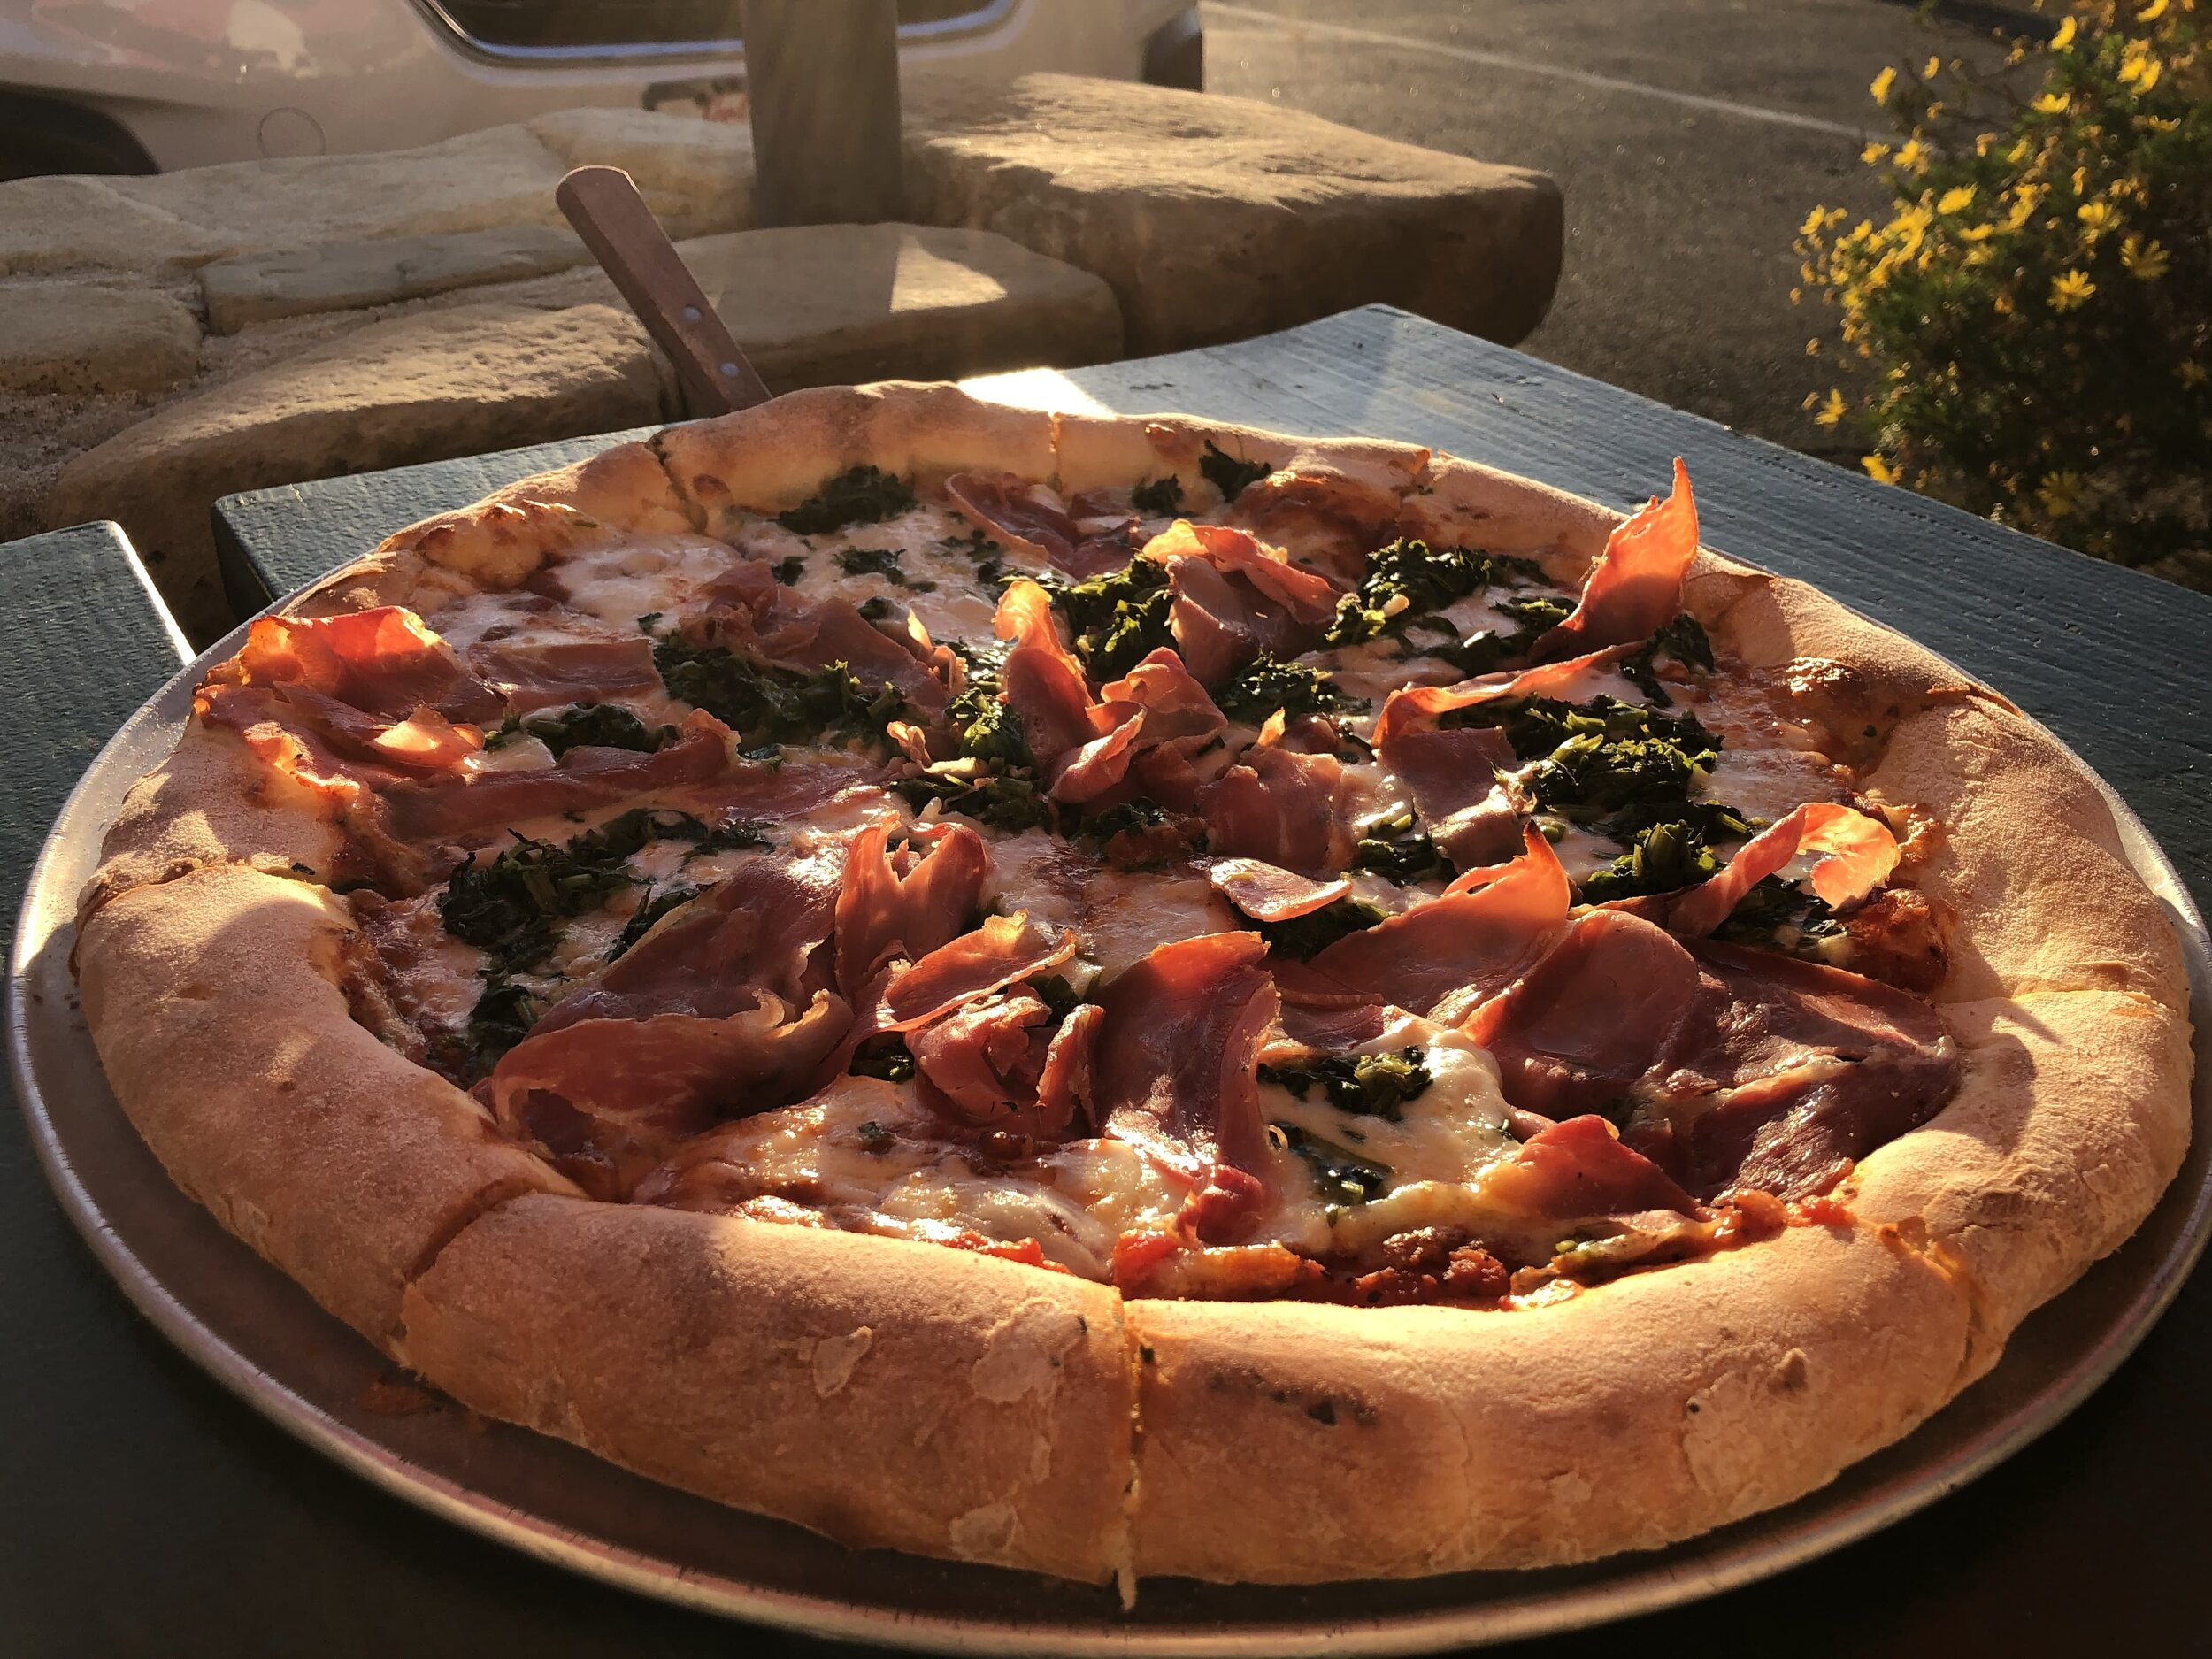 The best pizza in Ojai is at Boccali's